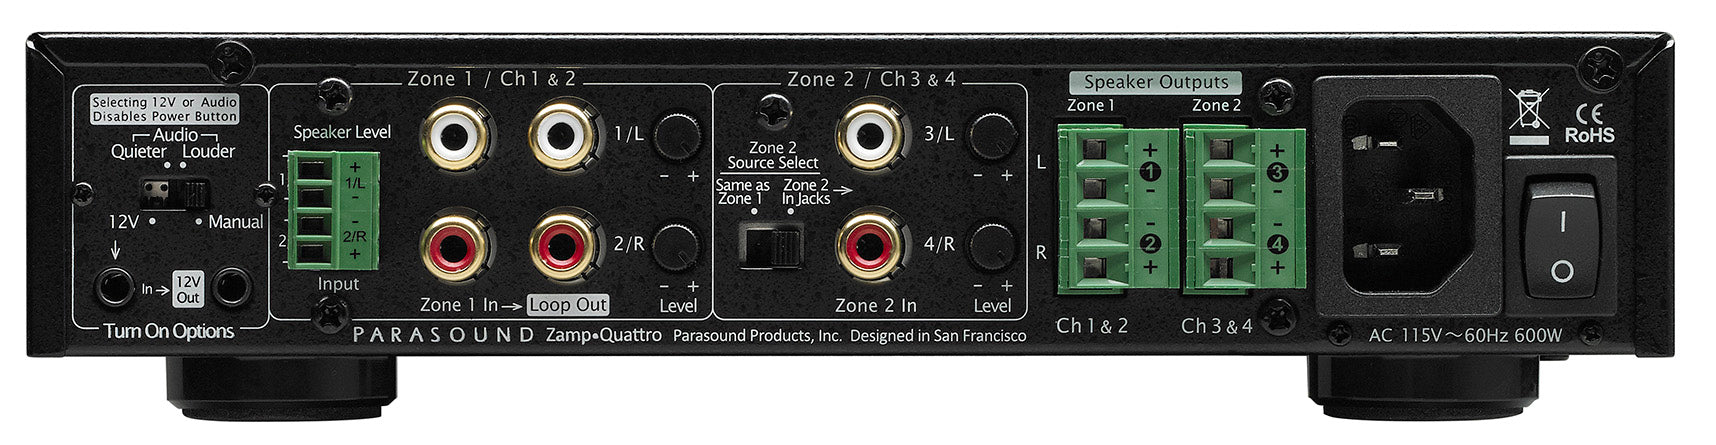 Parasound ZAmp Quattro Four Channel Dual Zone Power Amplifier - Safe and Sound HQ